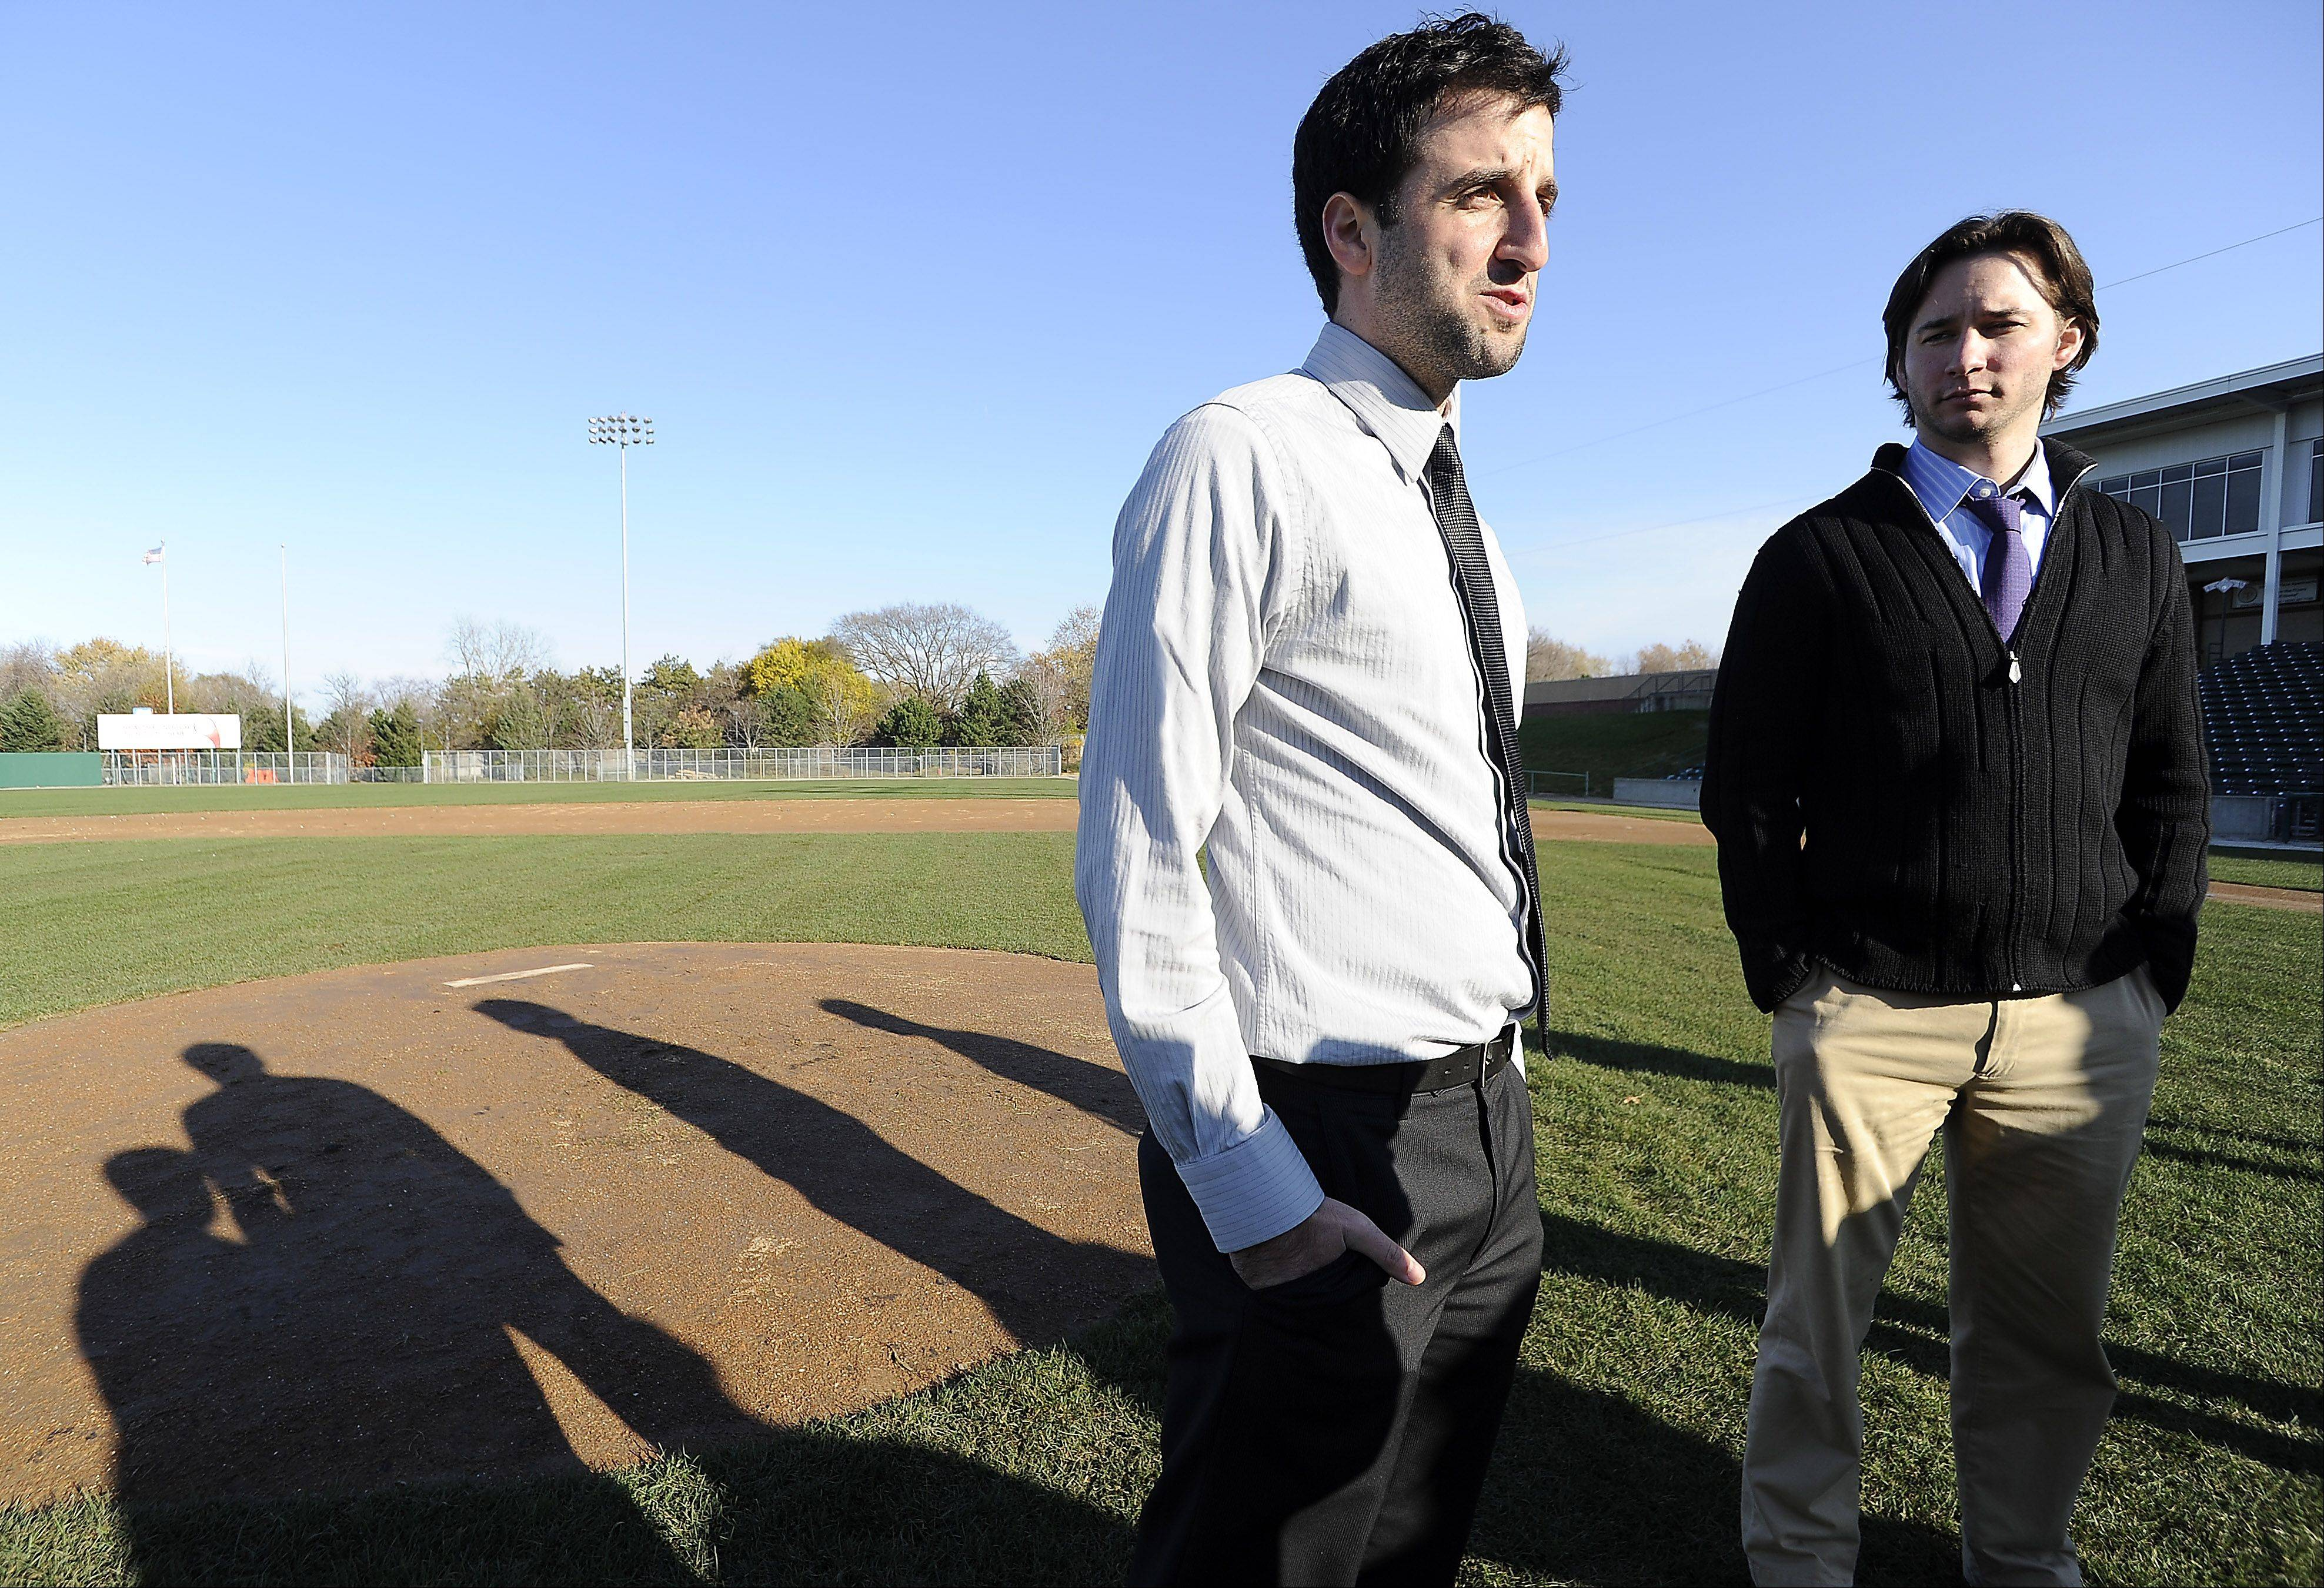 Andy Viano, president and general manager of the Schaumburg Boomers baseball team, and Dave Salvi, vice president of marketing and promotions, check out the new turf grass on the field and talk about the upcoming season.